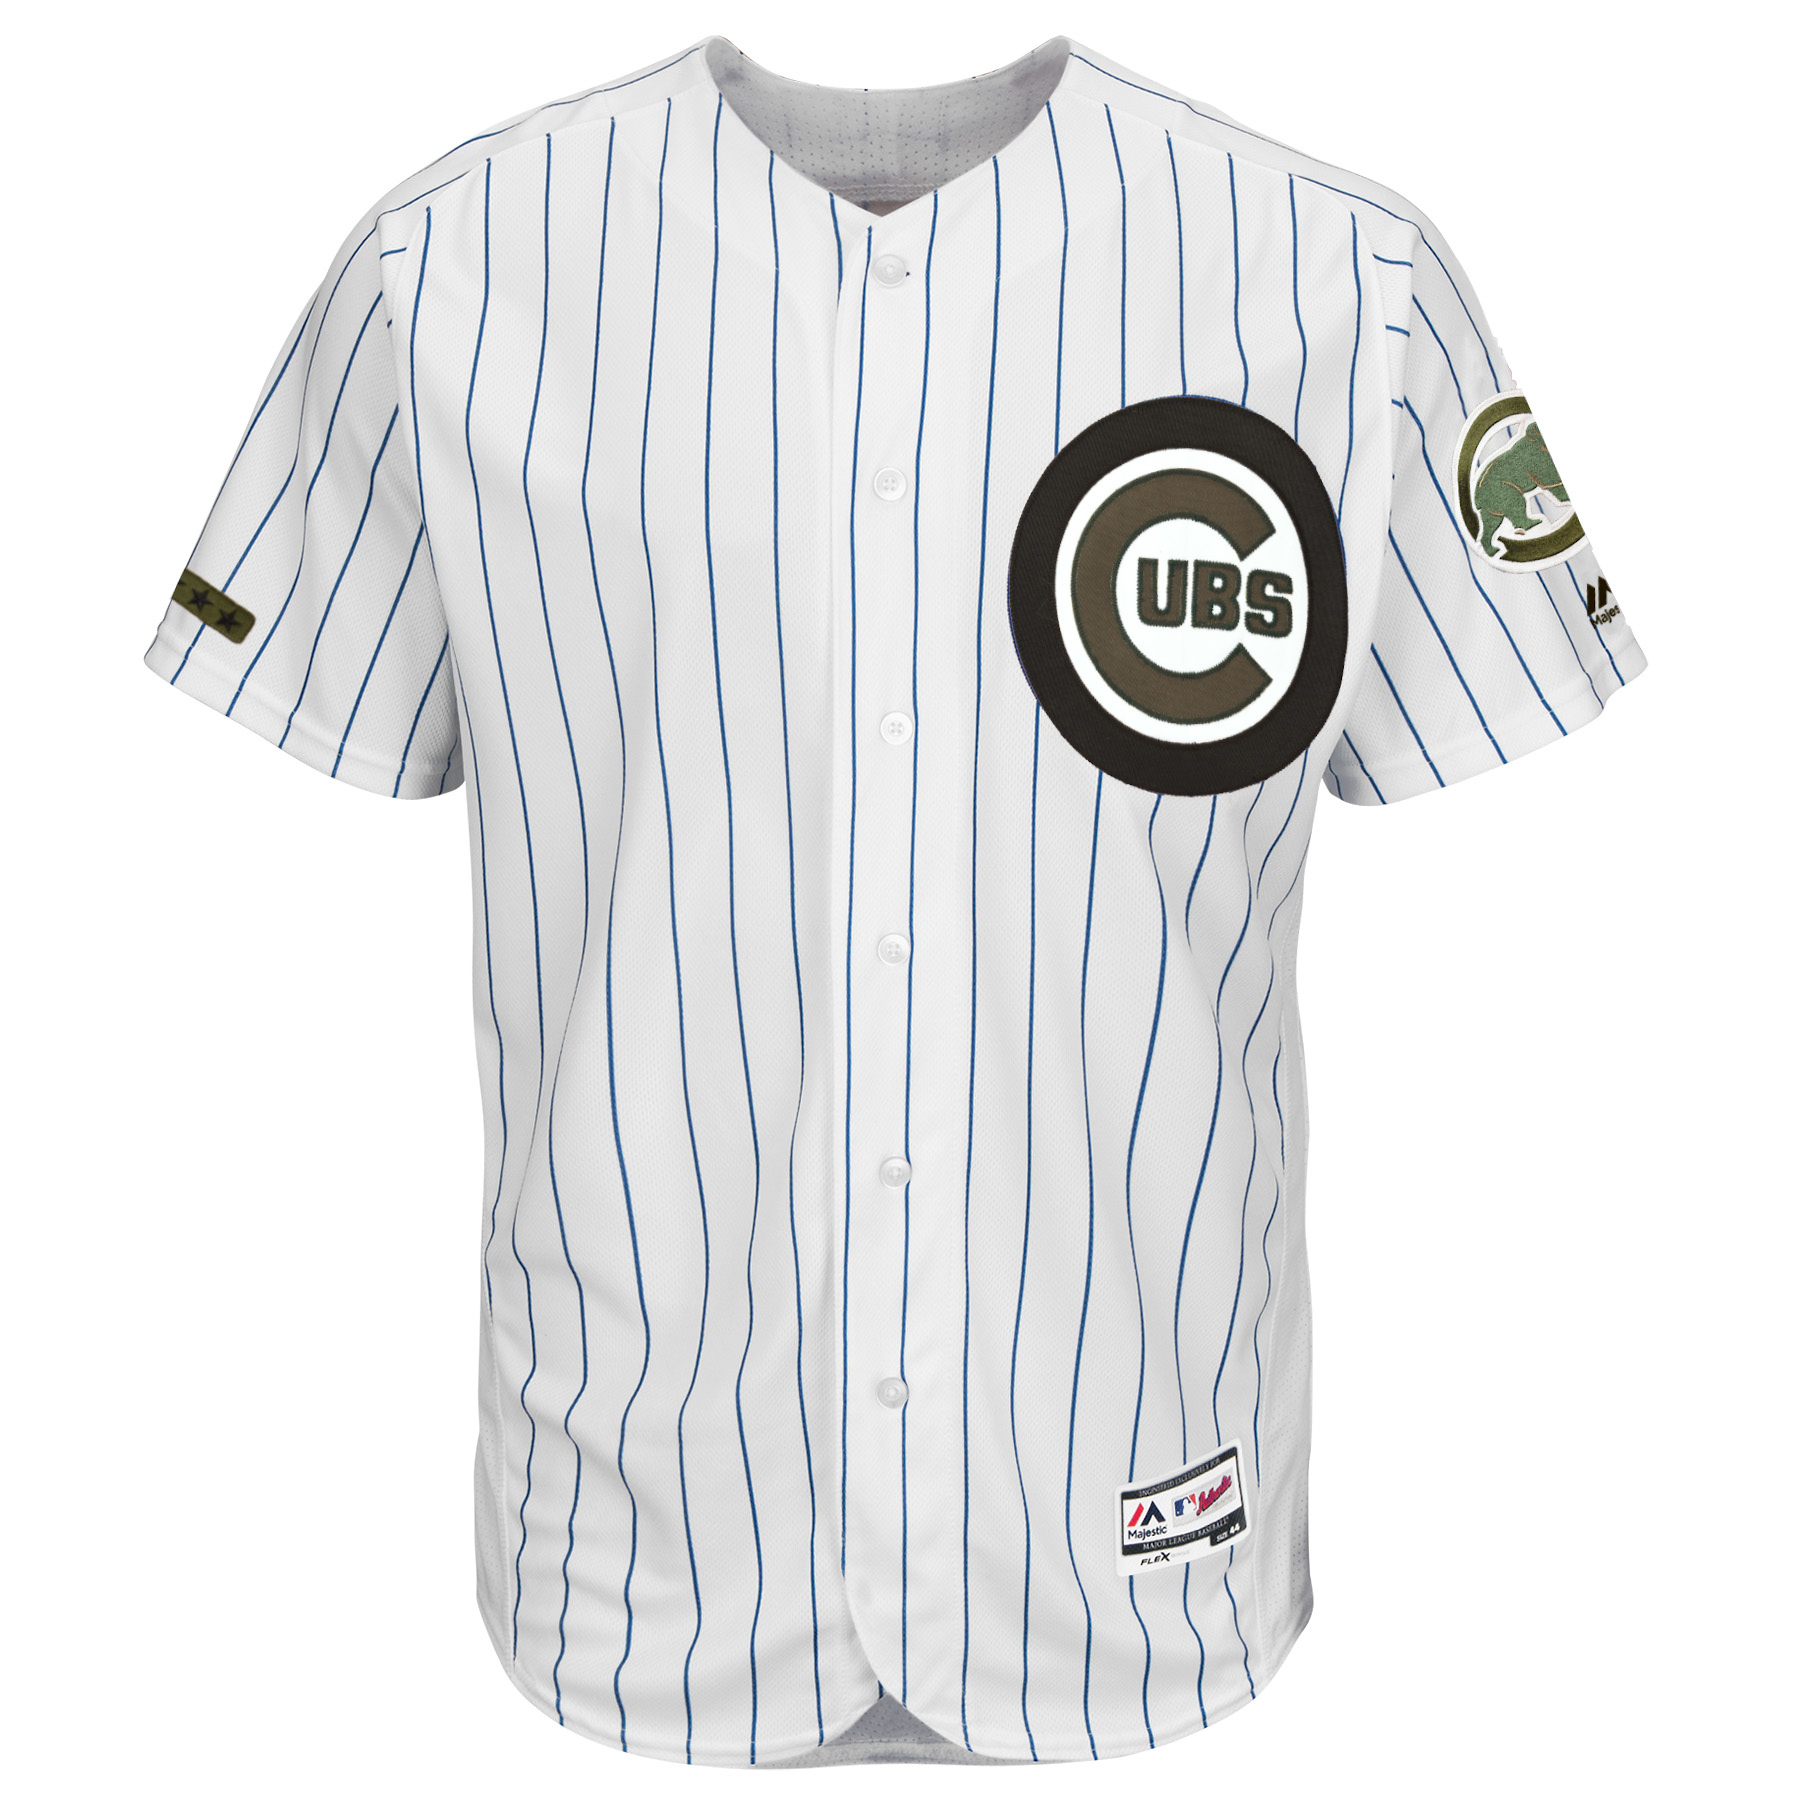 98a768241 MLB unveils 2018 special event jerseys